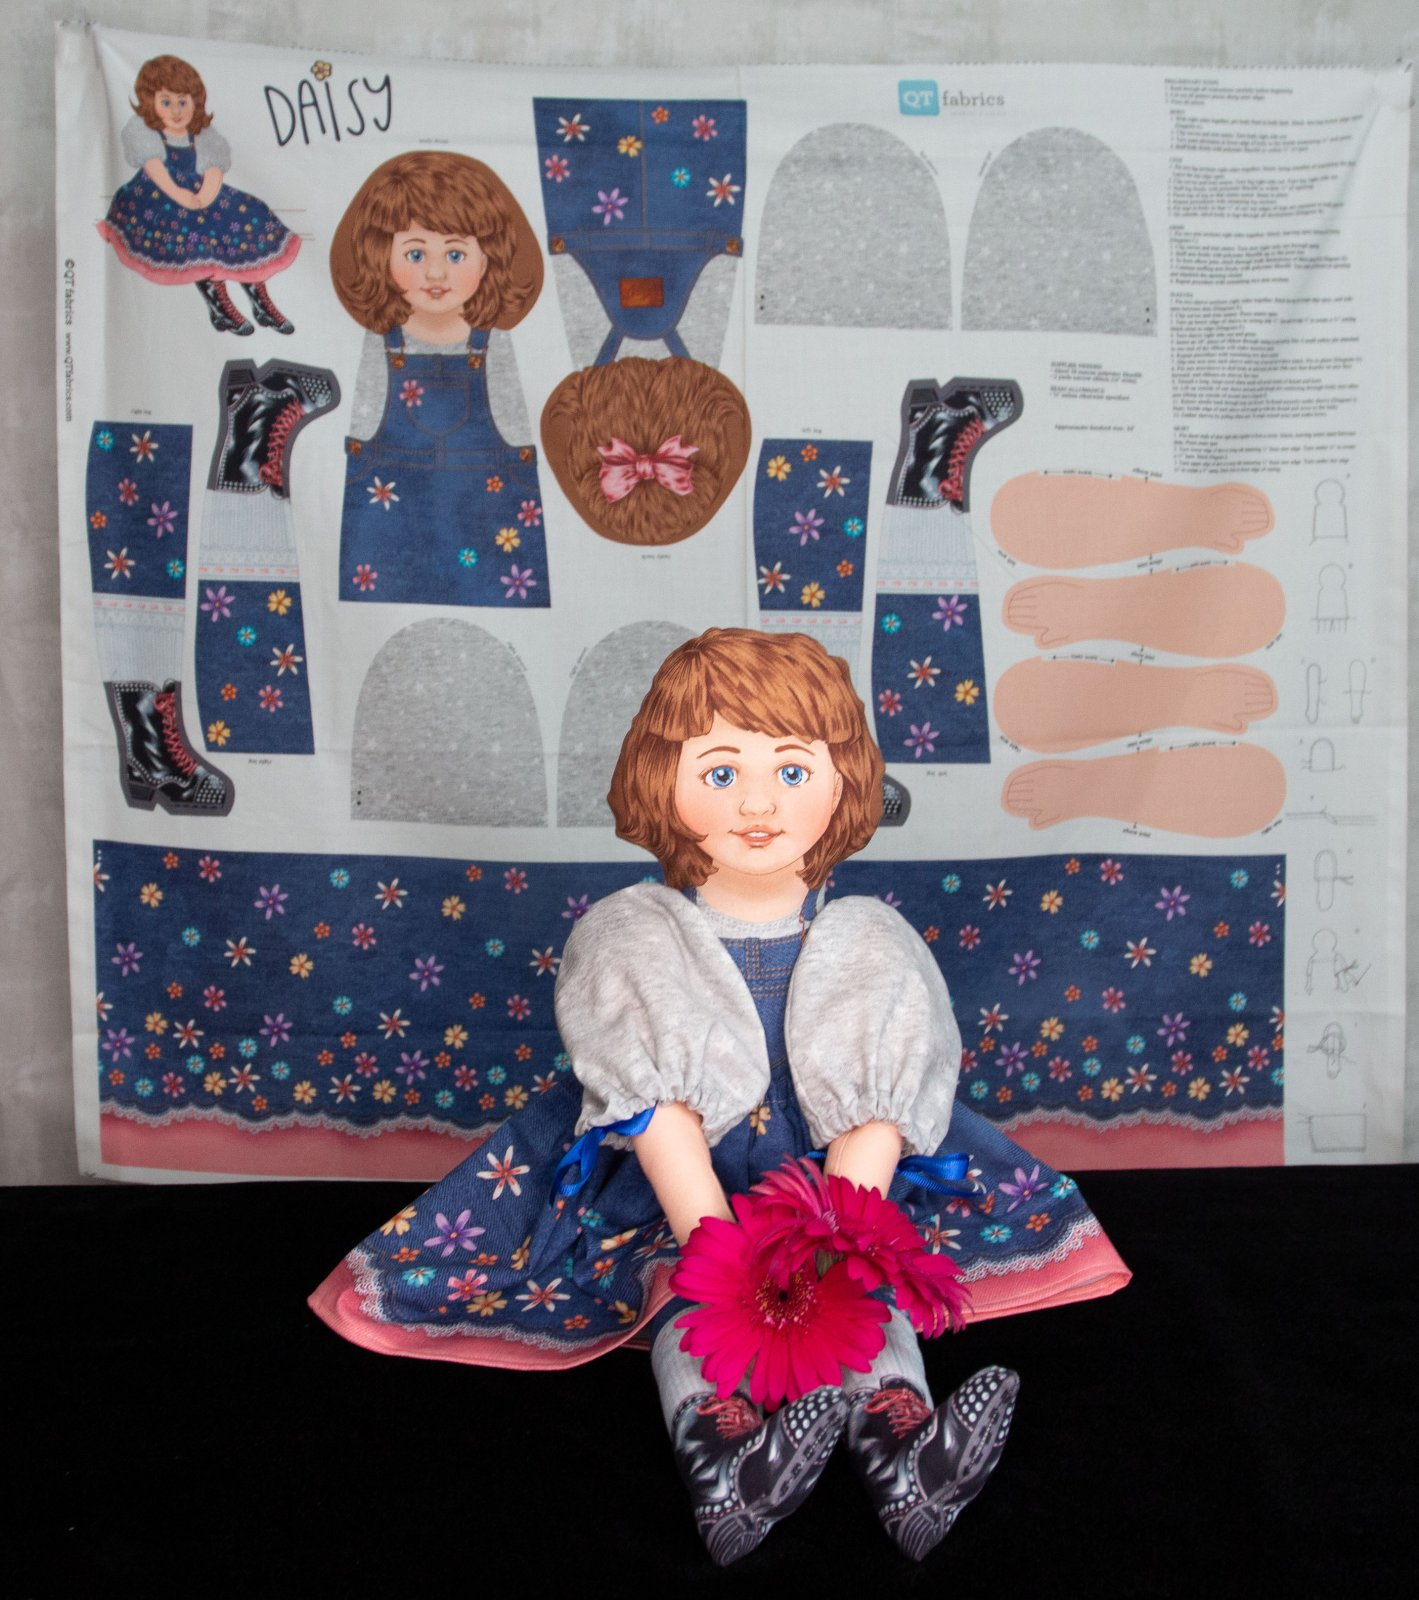 Sew & Go Daisy Doll Craft Panel